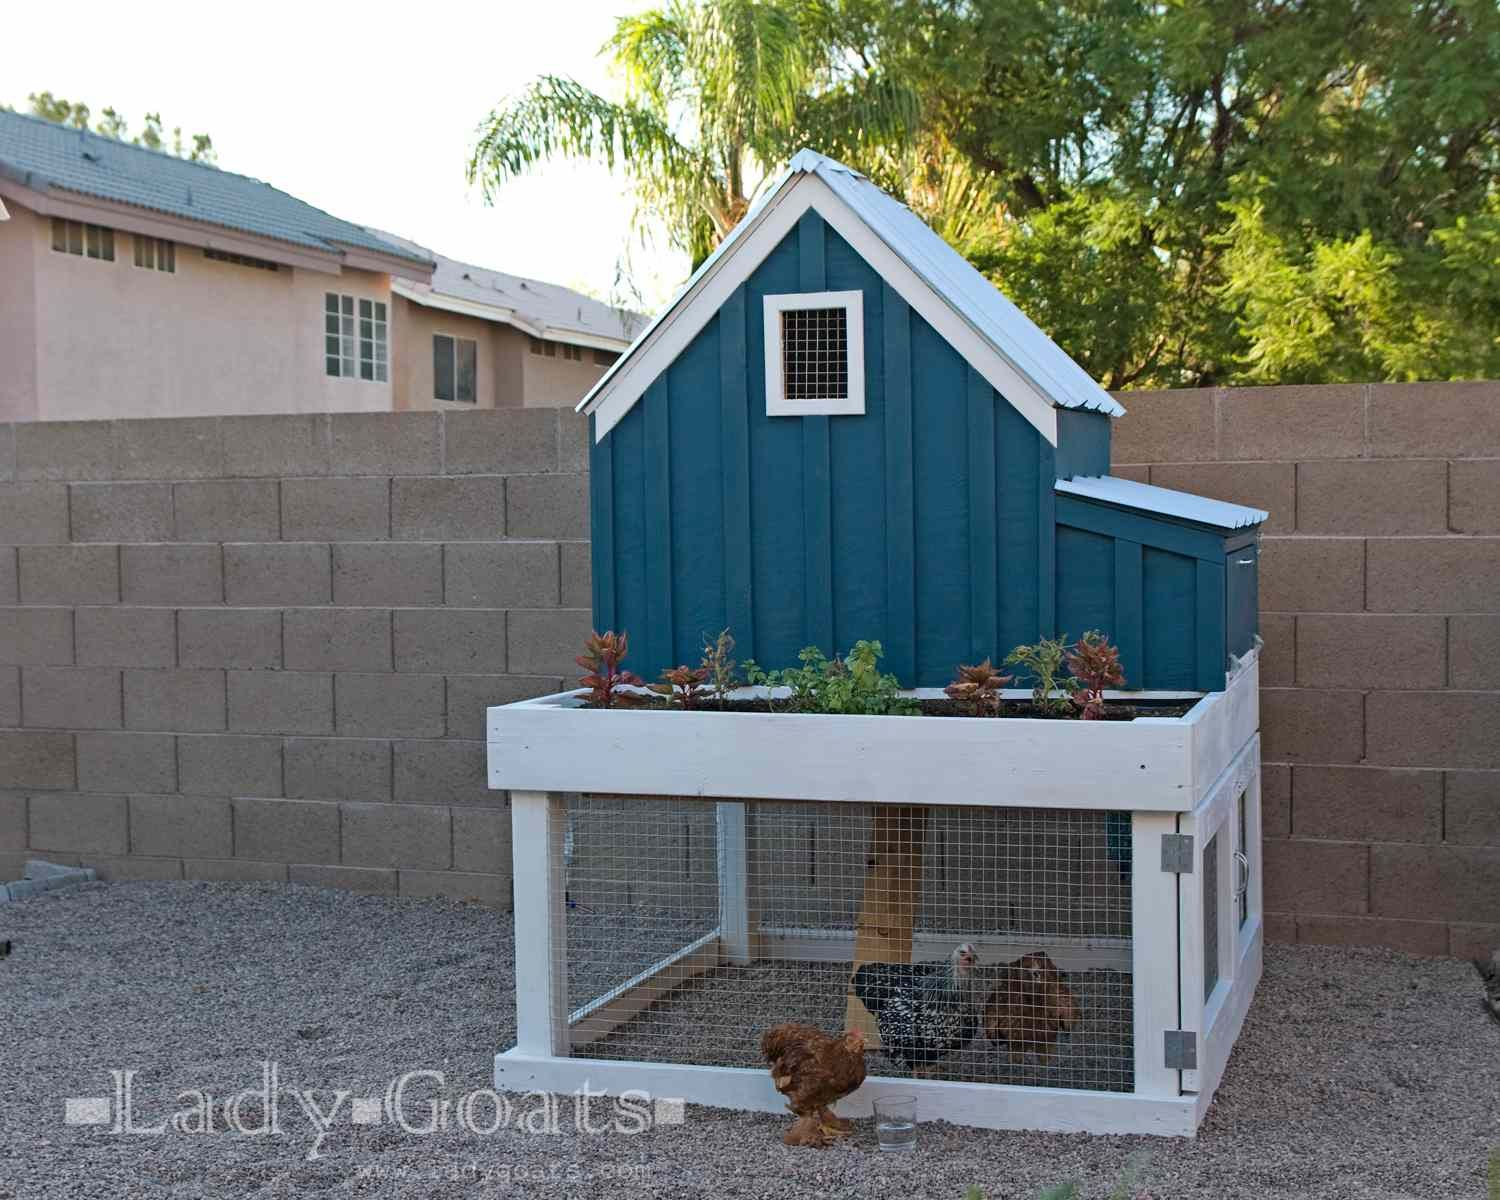 Free Chicken Coop Plans Google Search Small Chicken Coops Portable Chicken Coop Diy Chicken Coop Plans Backyard chicken coop diy plans